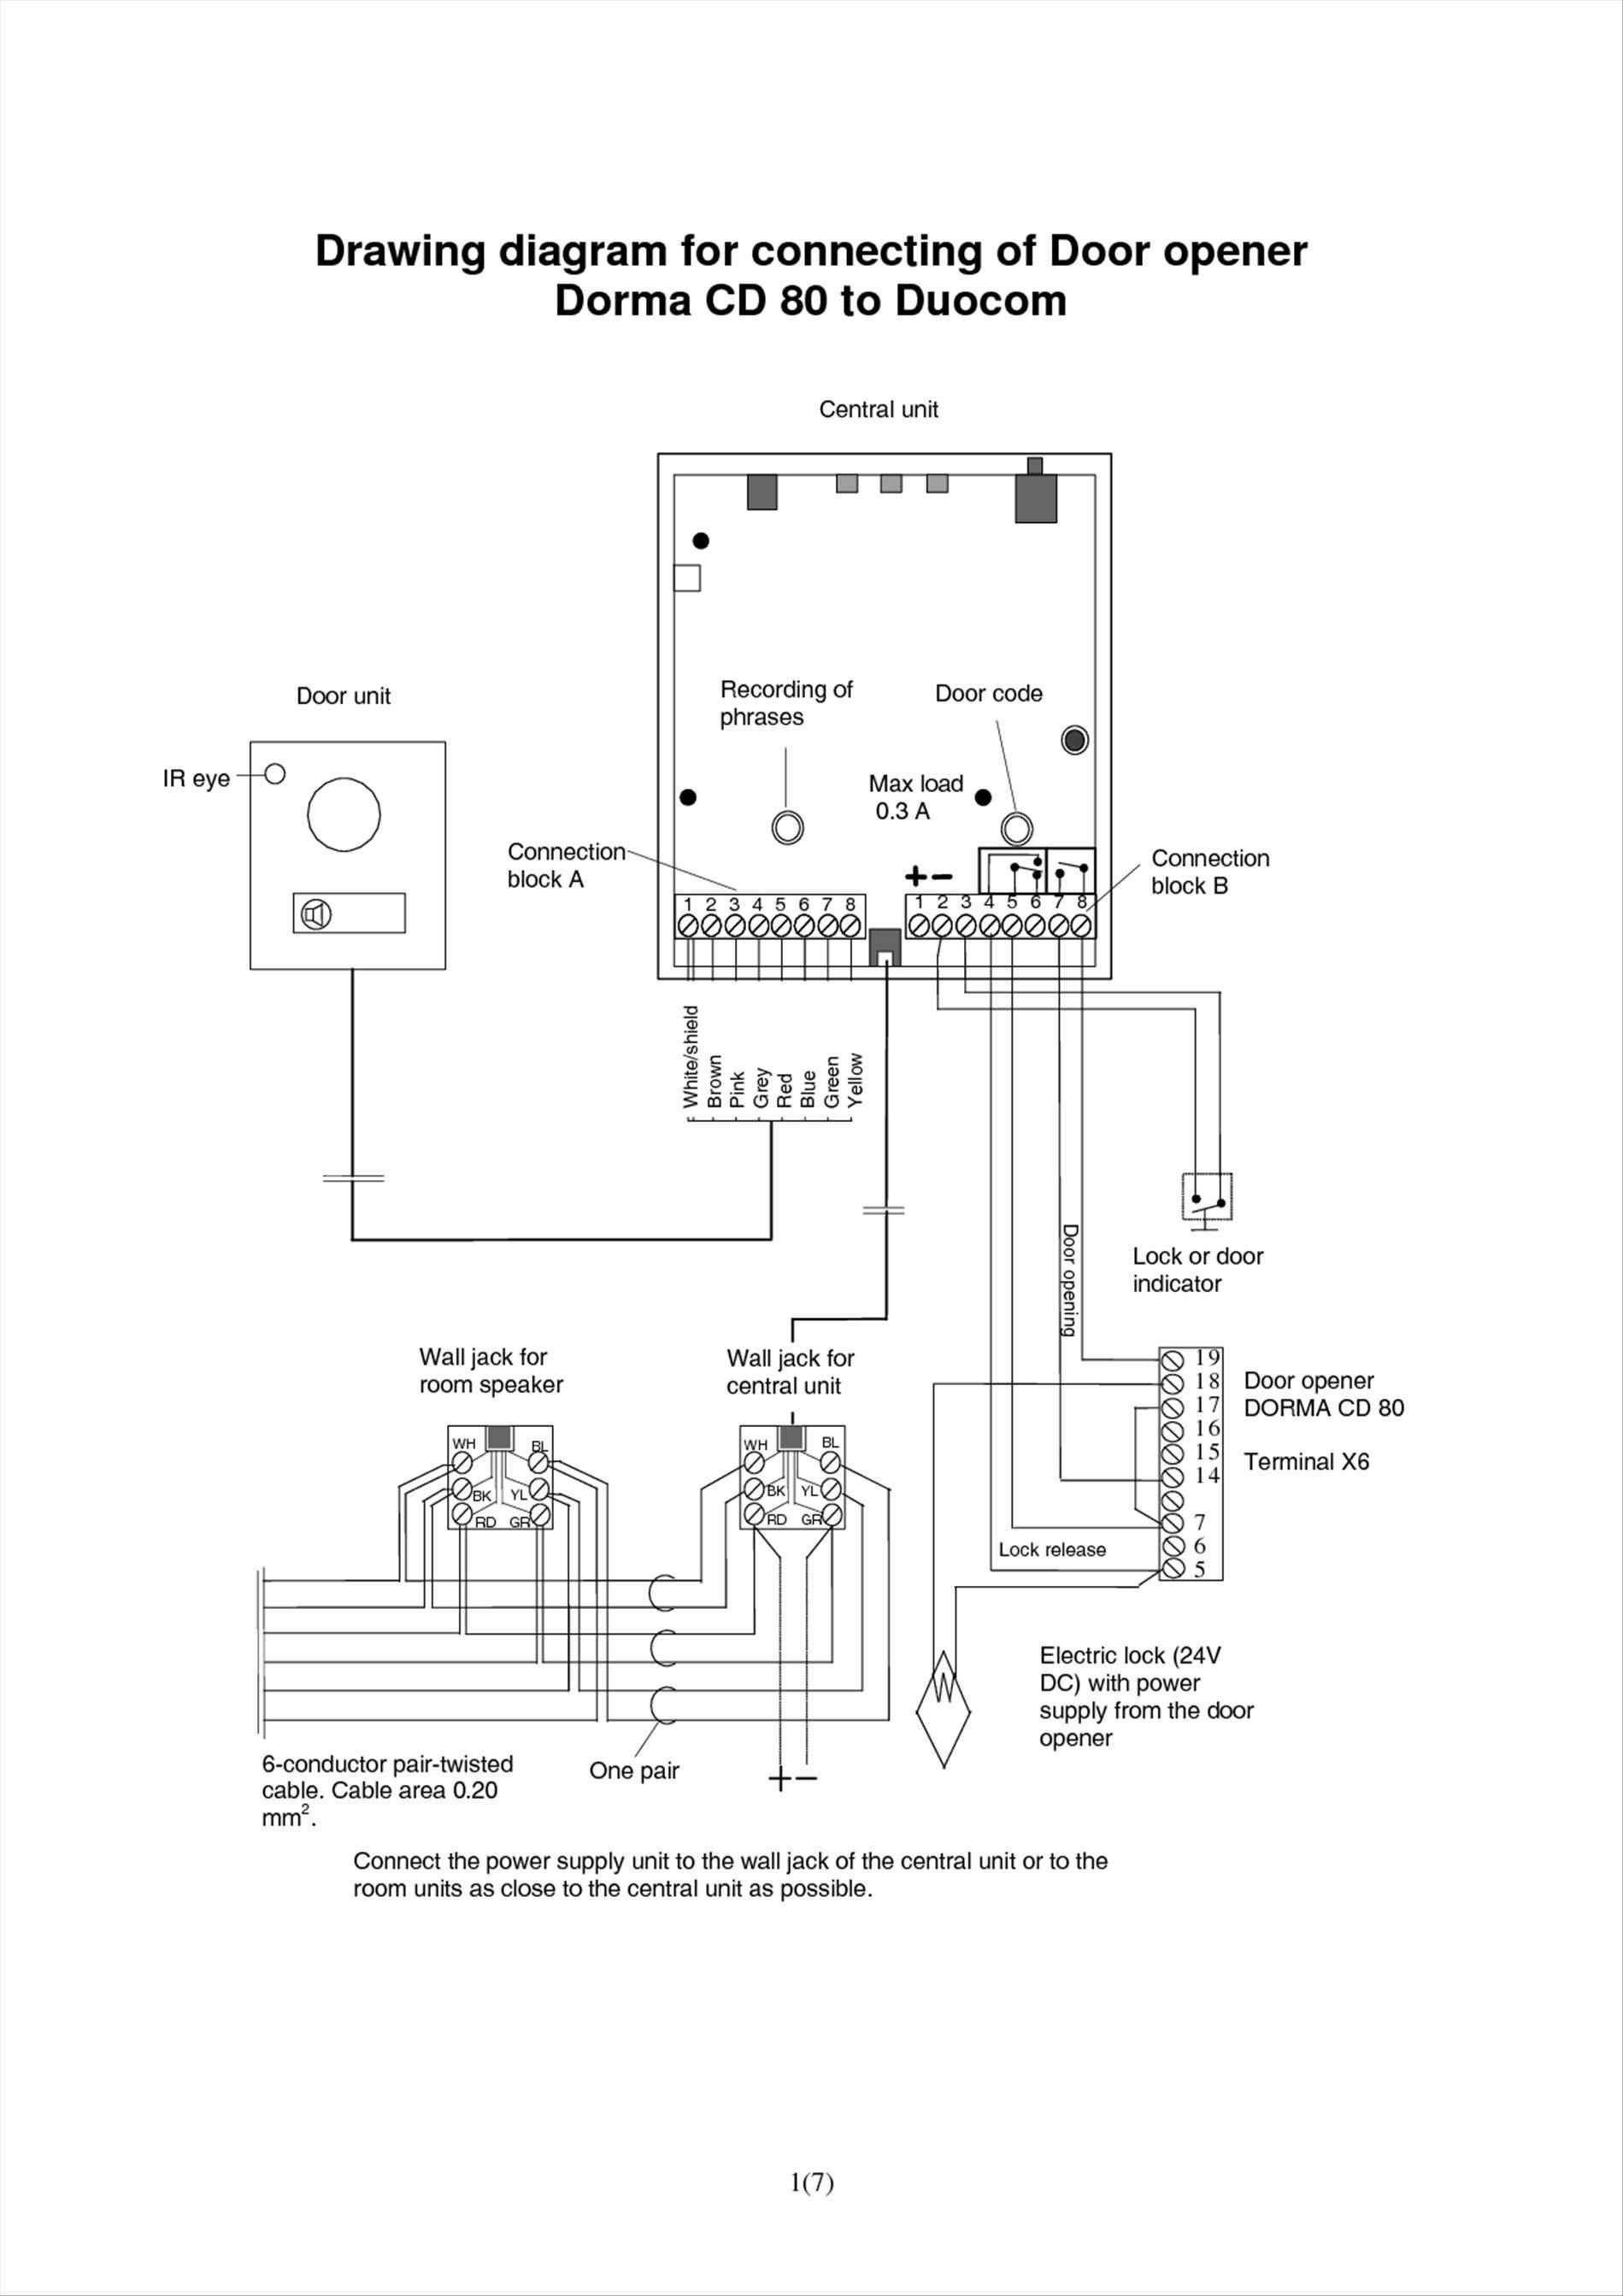 genie garage door safety sensor wiring diagram download Garage Door Safety Sensor Diagram Genie Garage Door Sensor Wiring Diagram